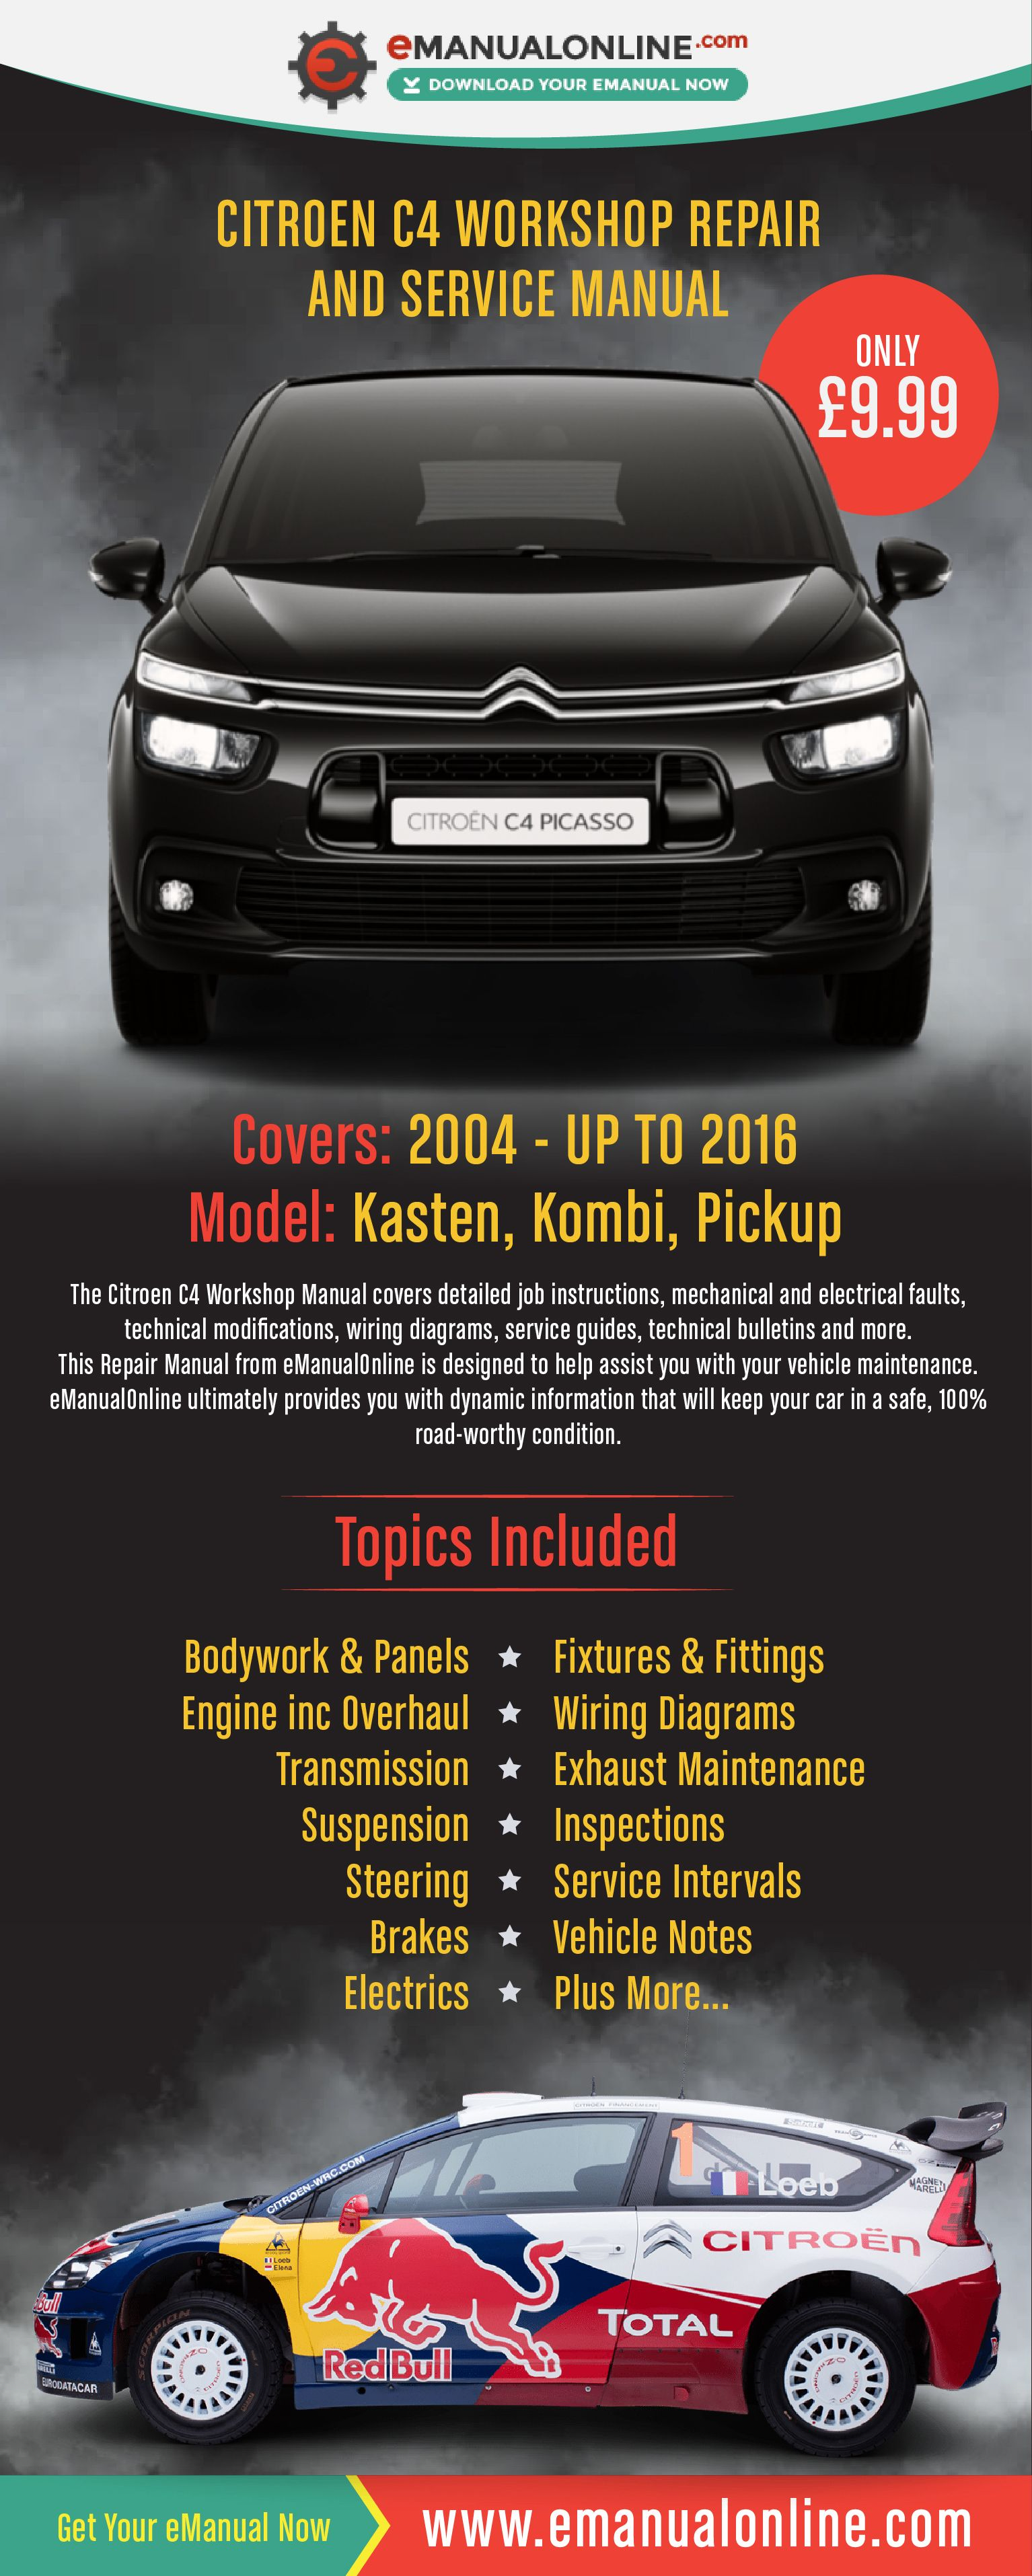 Citroen C4 Workshop Repair And Service Manual Business Sales, Business  Products, Manual, Authors